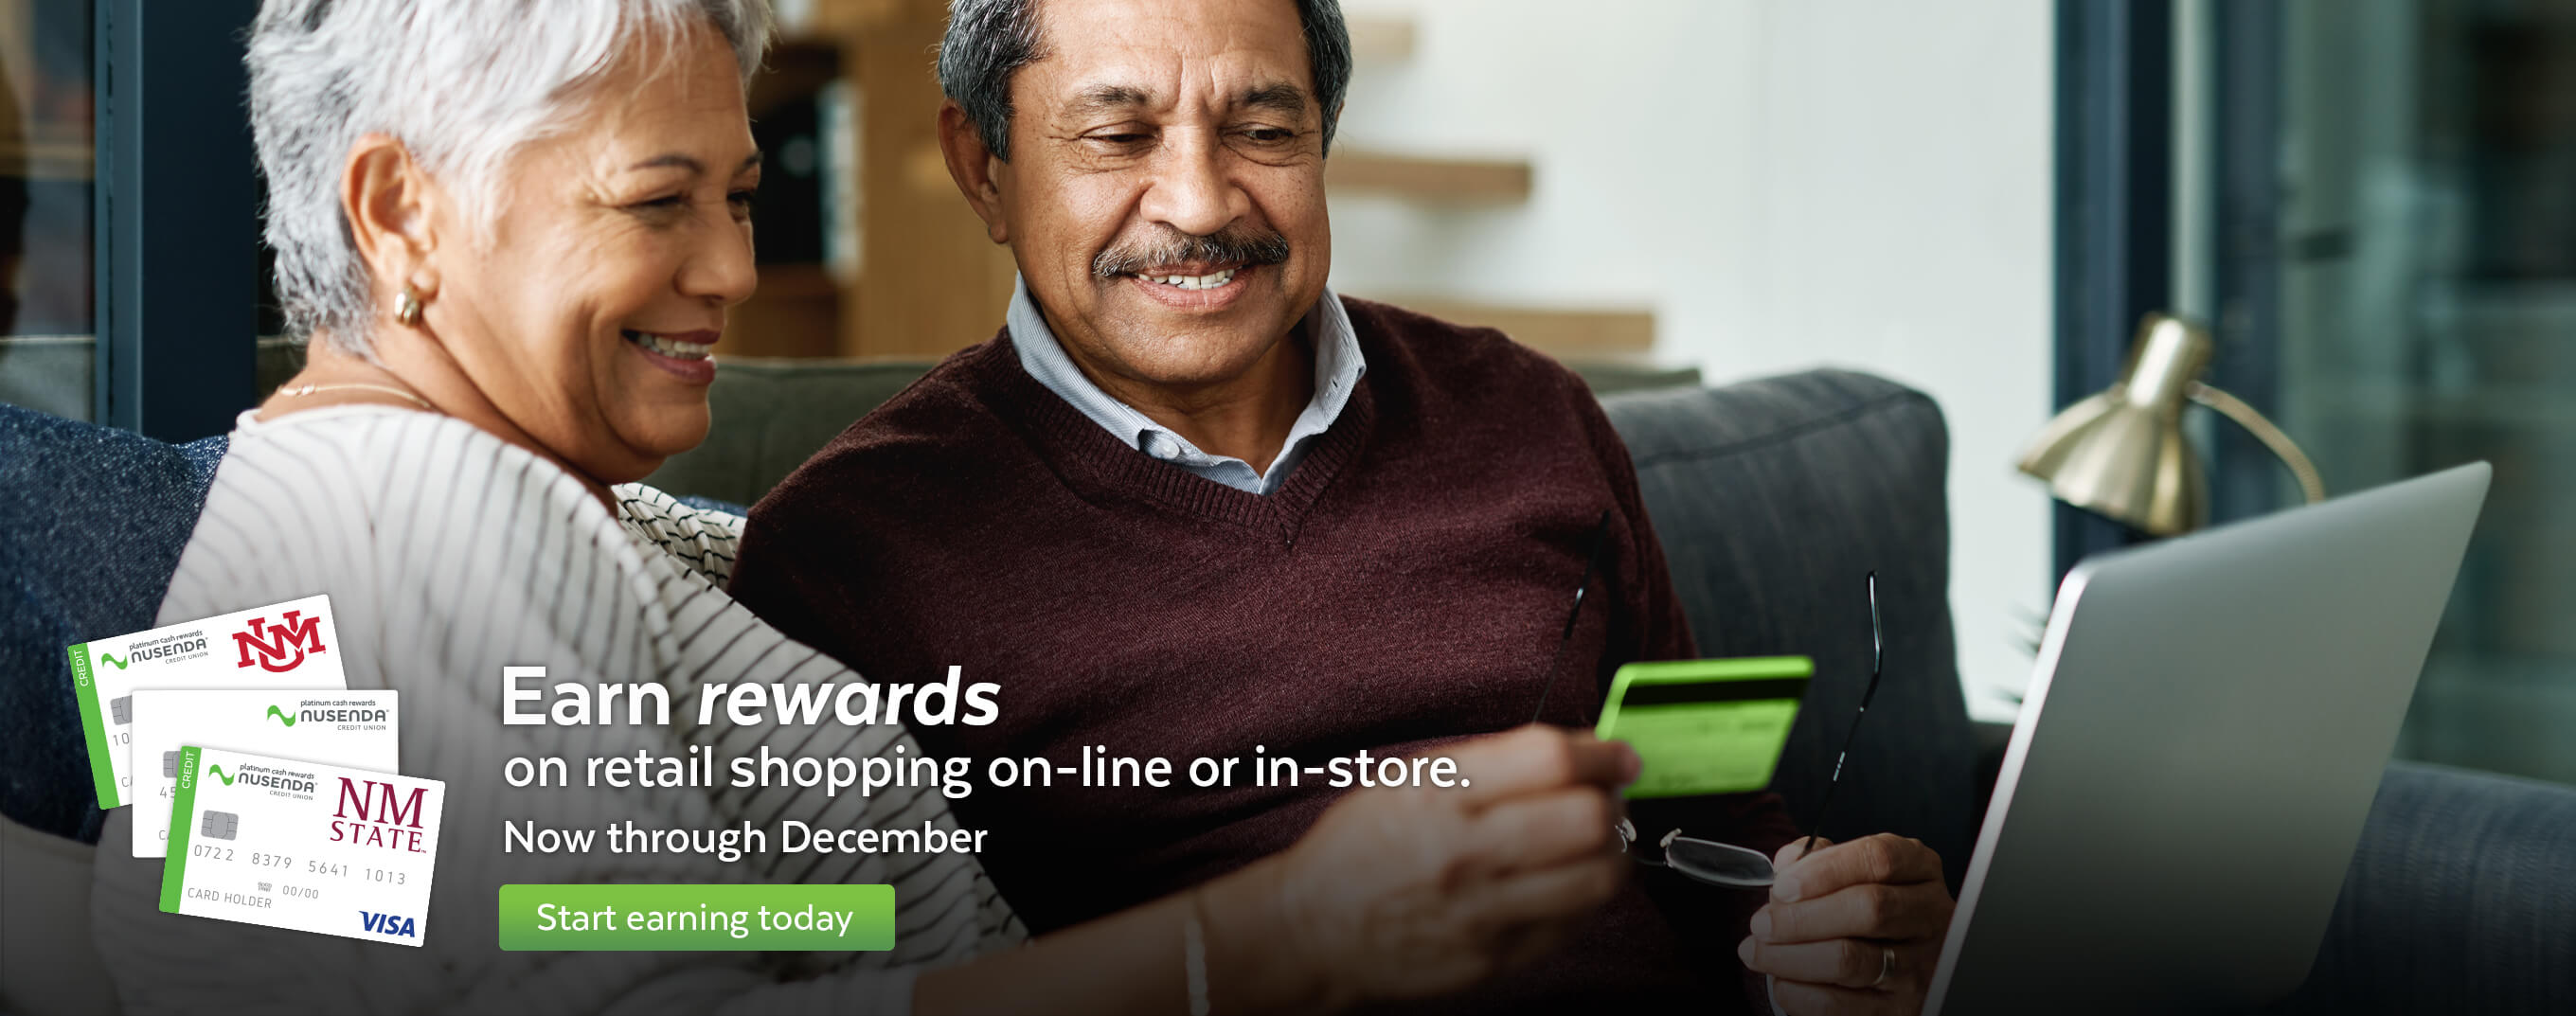 Earn rewards on retail shopping online or in-store now through December.